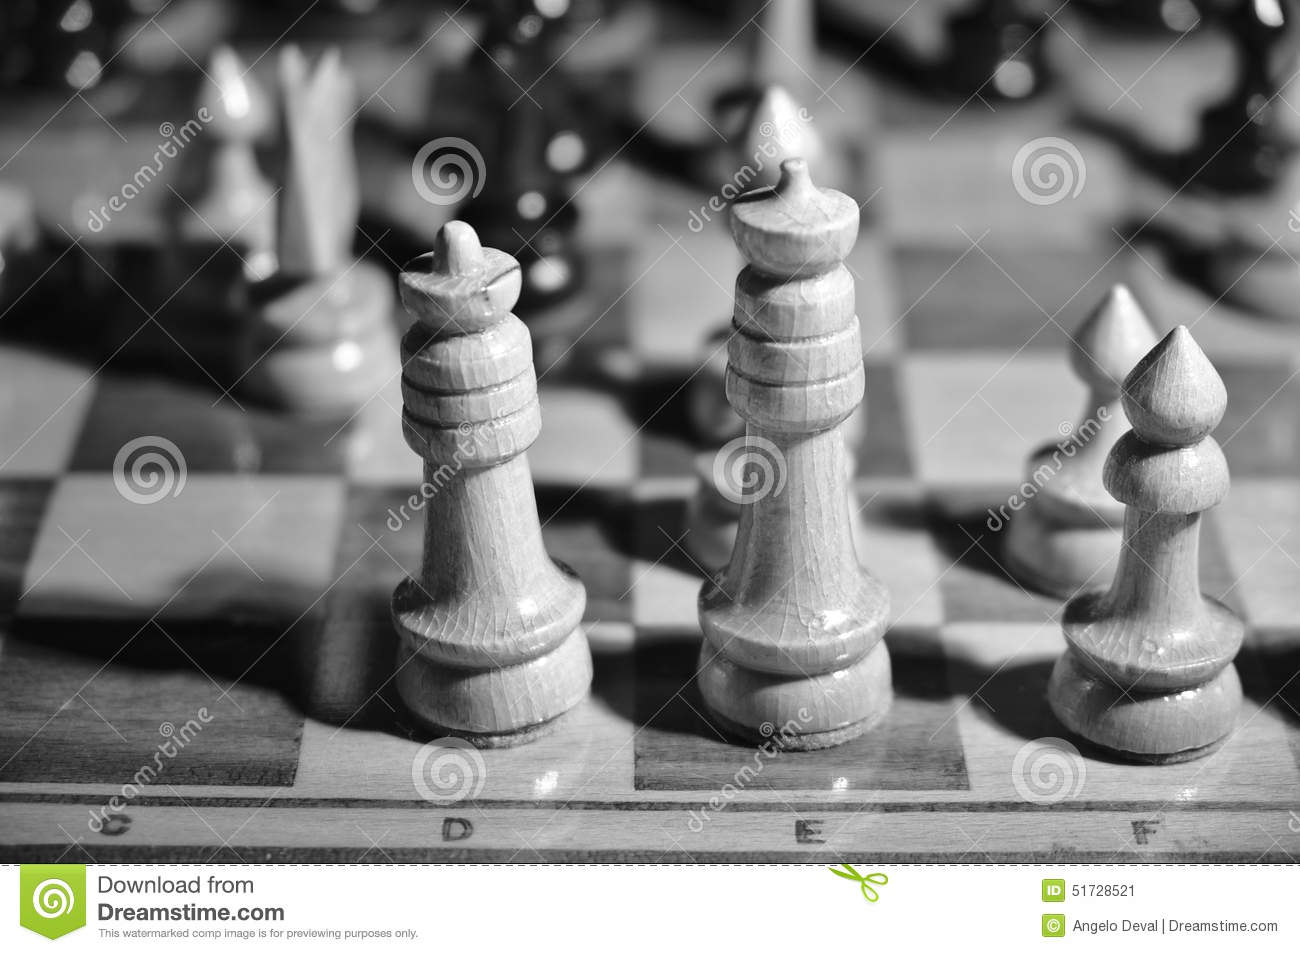 King and queen side by side on a chessboard black and white photograph